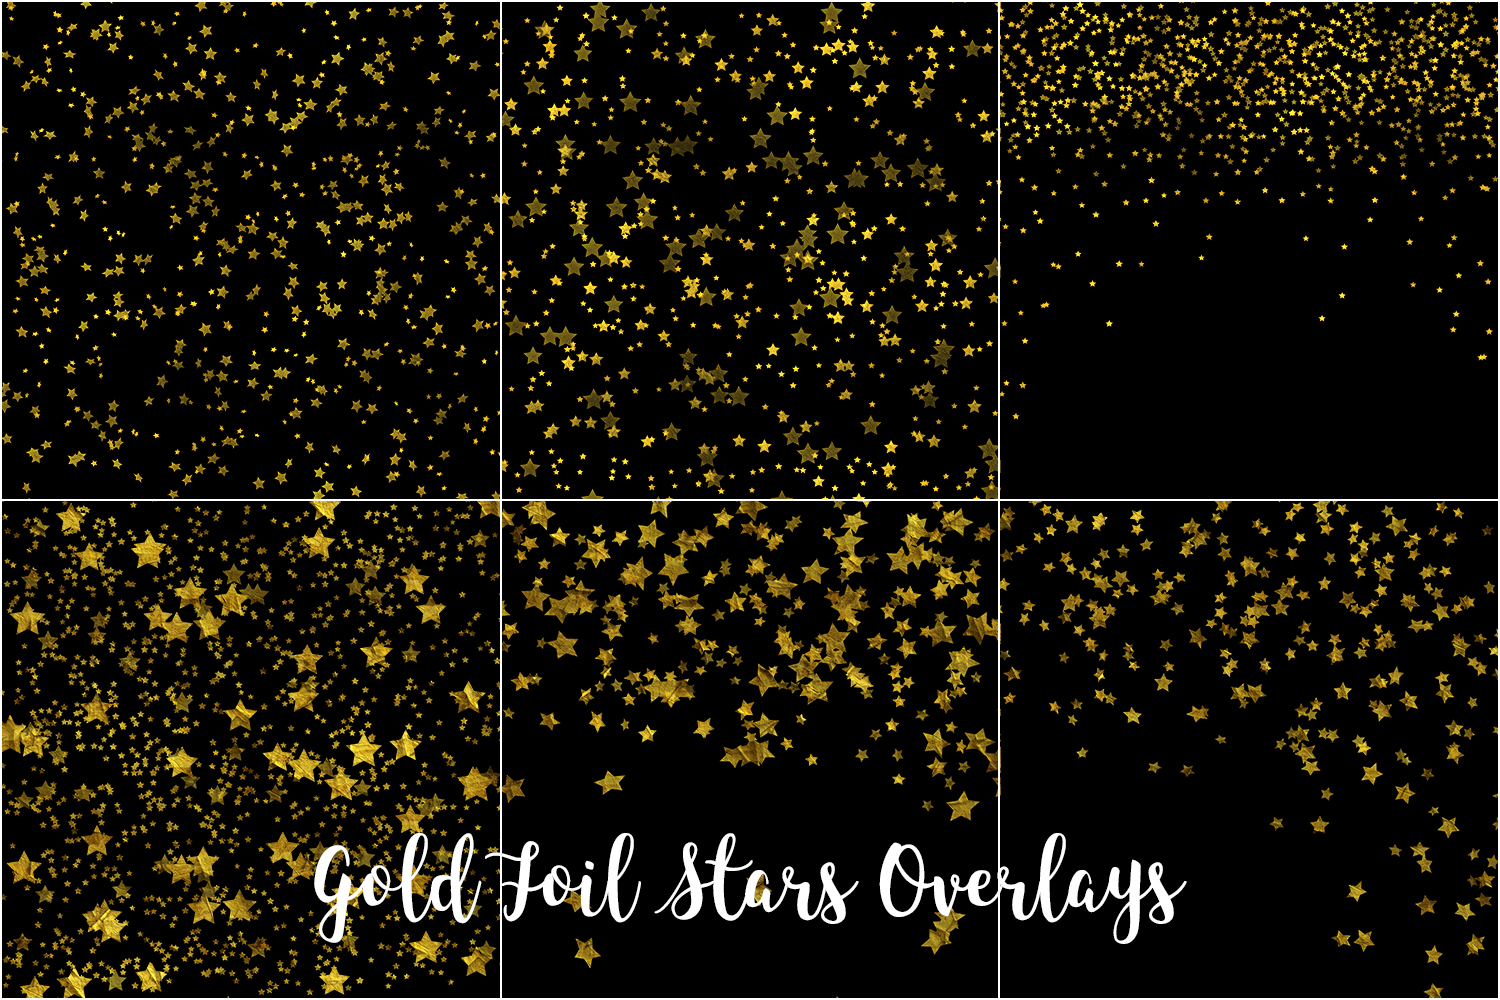 Gold Foil Stars Overlays, Gold Stars Confetti example image 3